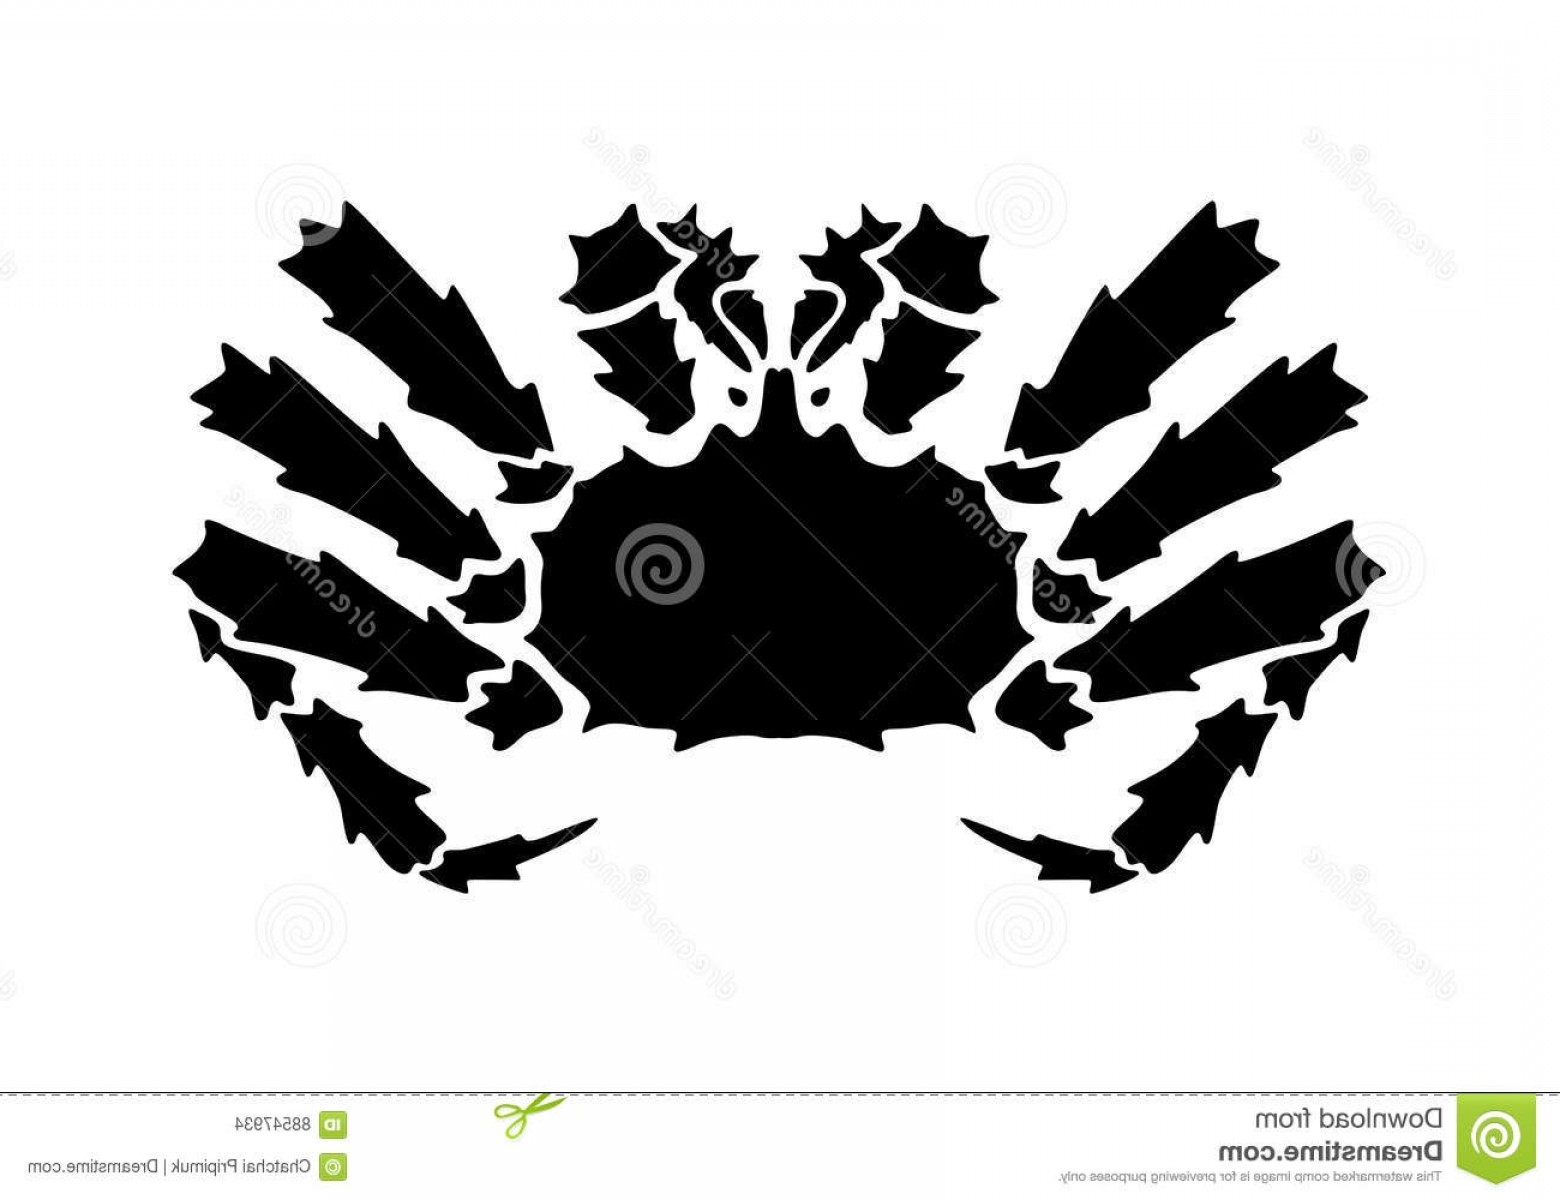 Crab Vector Black: Stock Illustration Graphic Alaska Crab Vector Illustration Black White Background Image